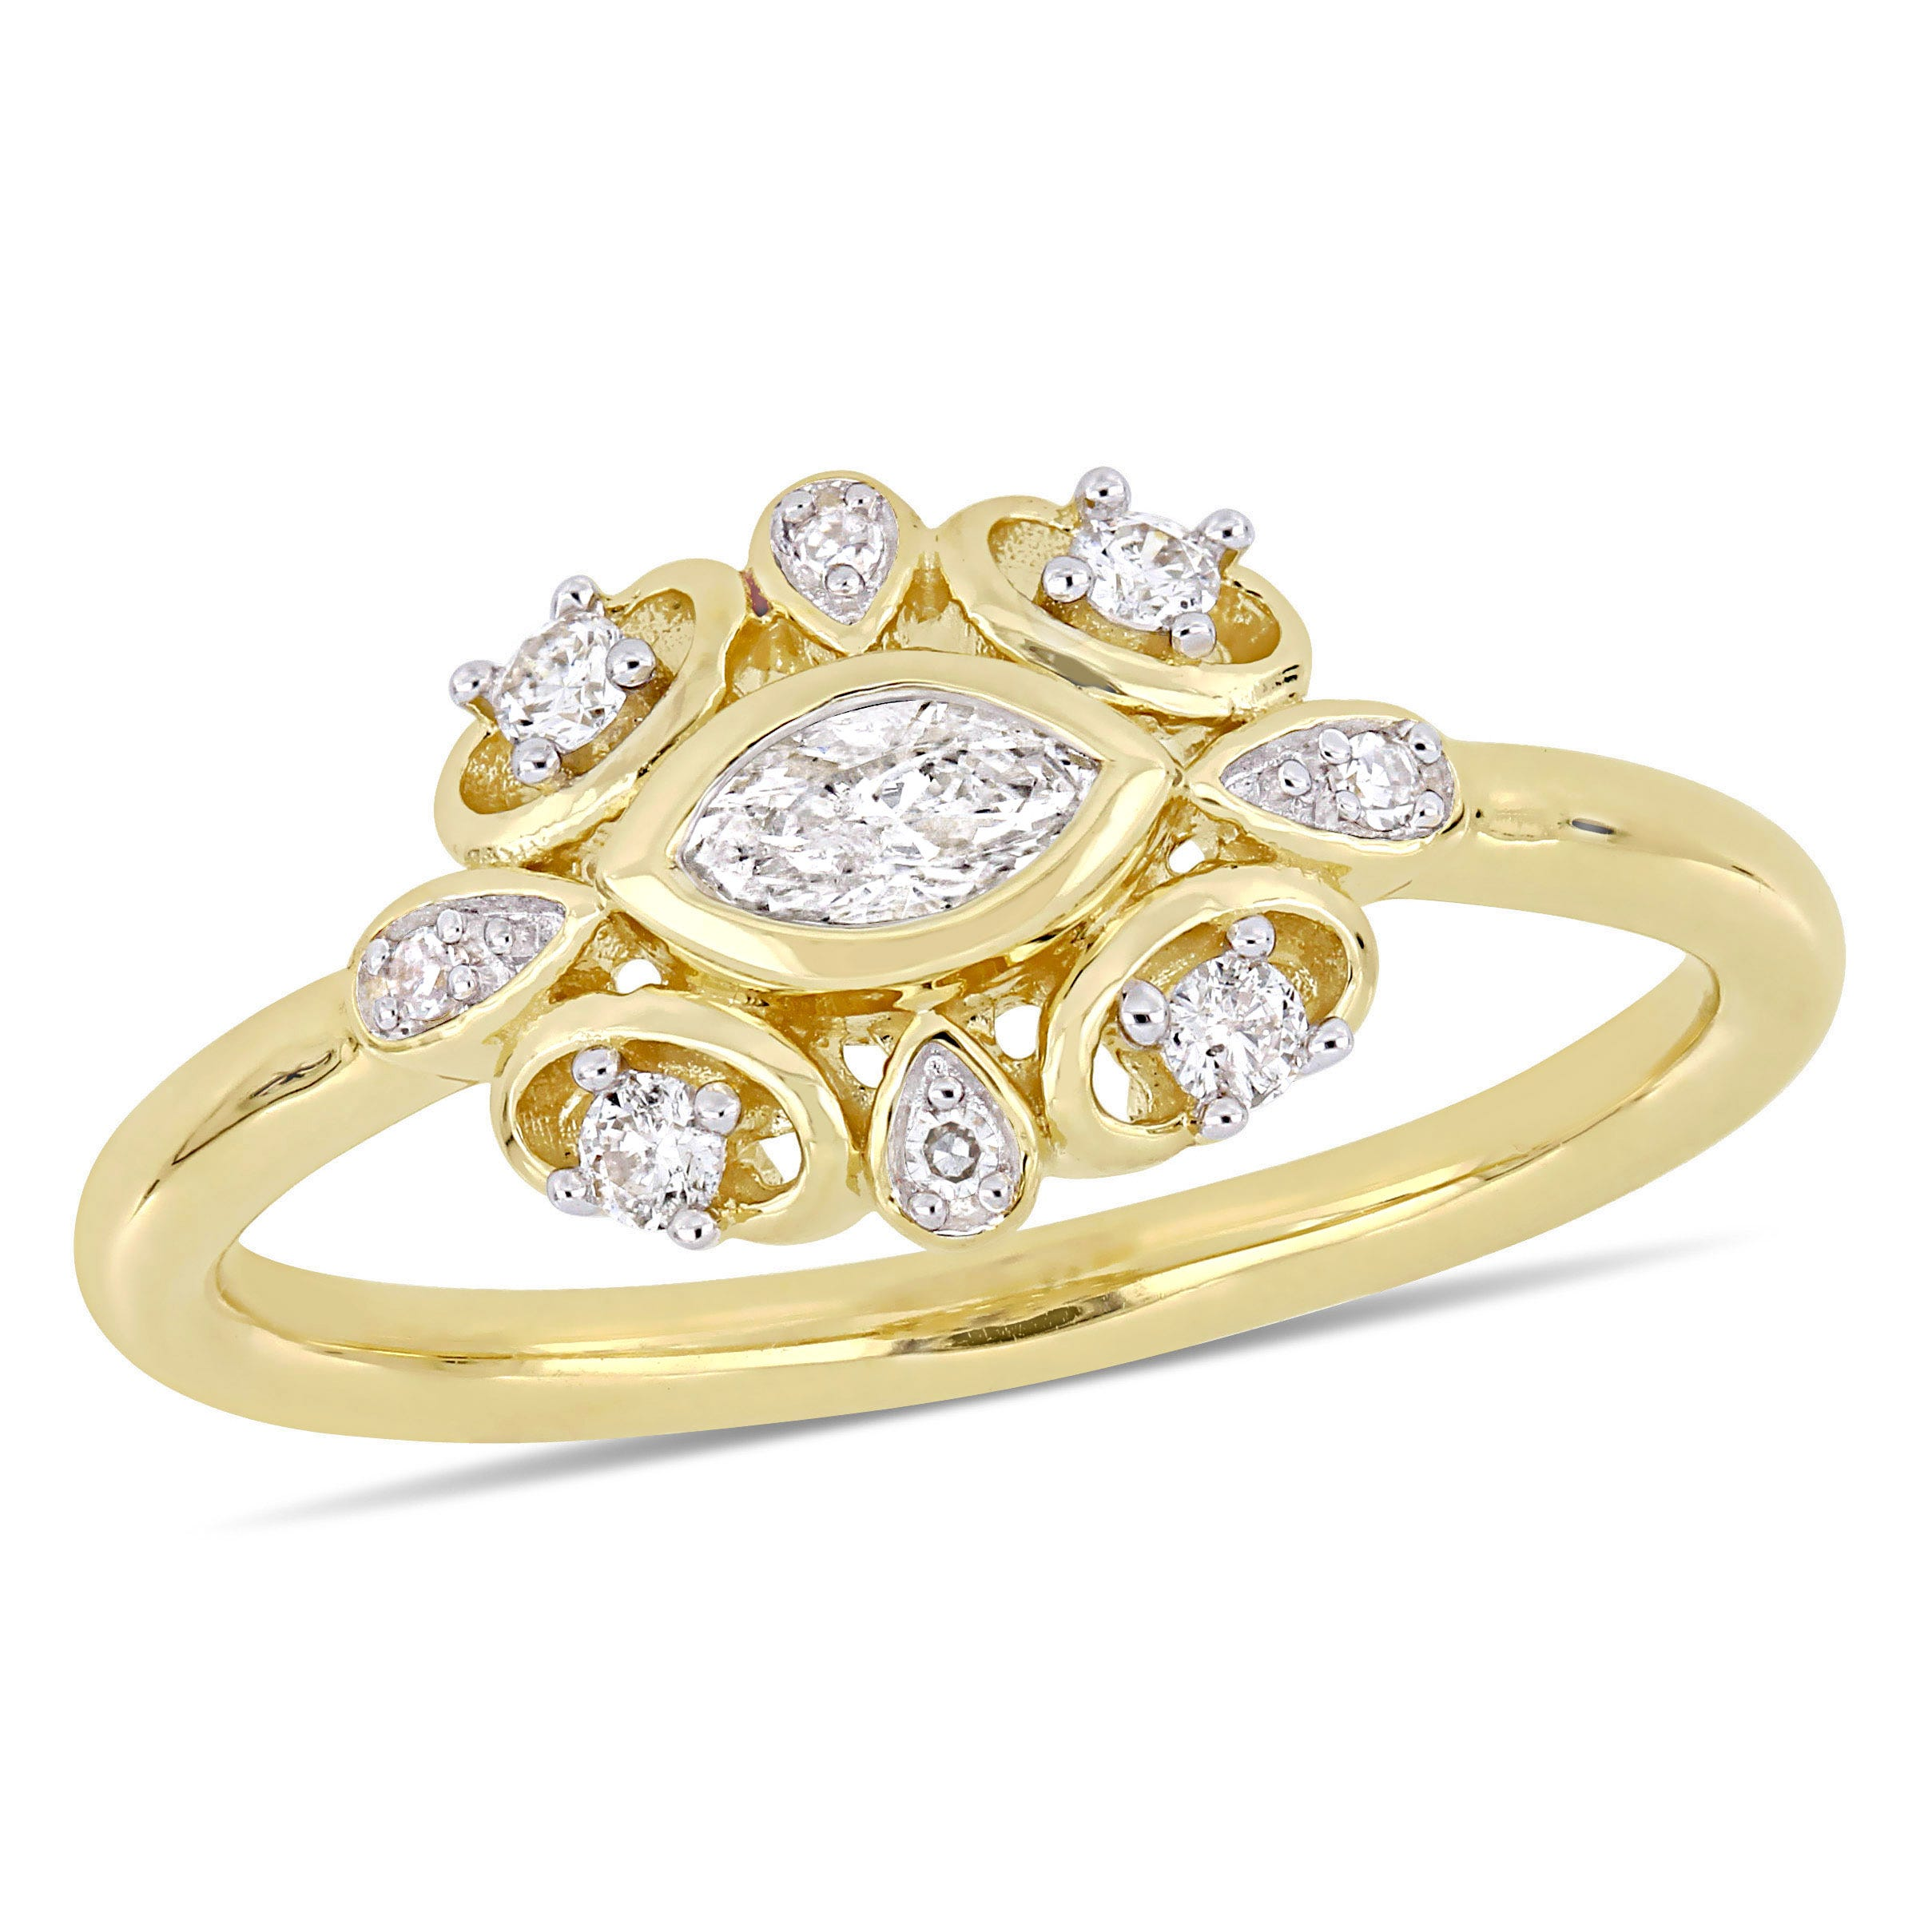 Everly Sideways 1/4ctw. Marquise & Round Diamond Fashion Ring in 10k Yellow Gold